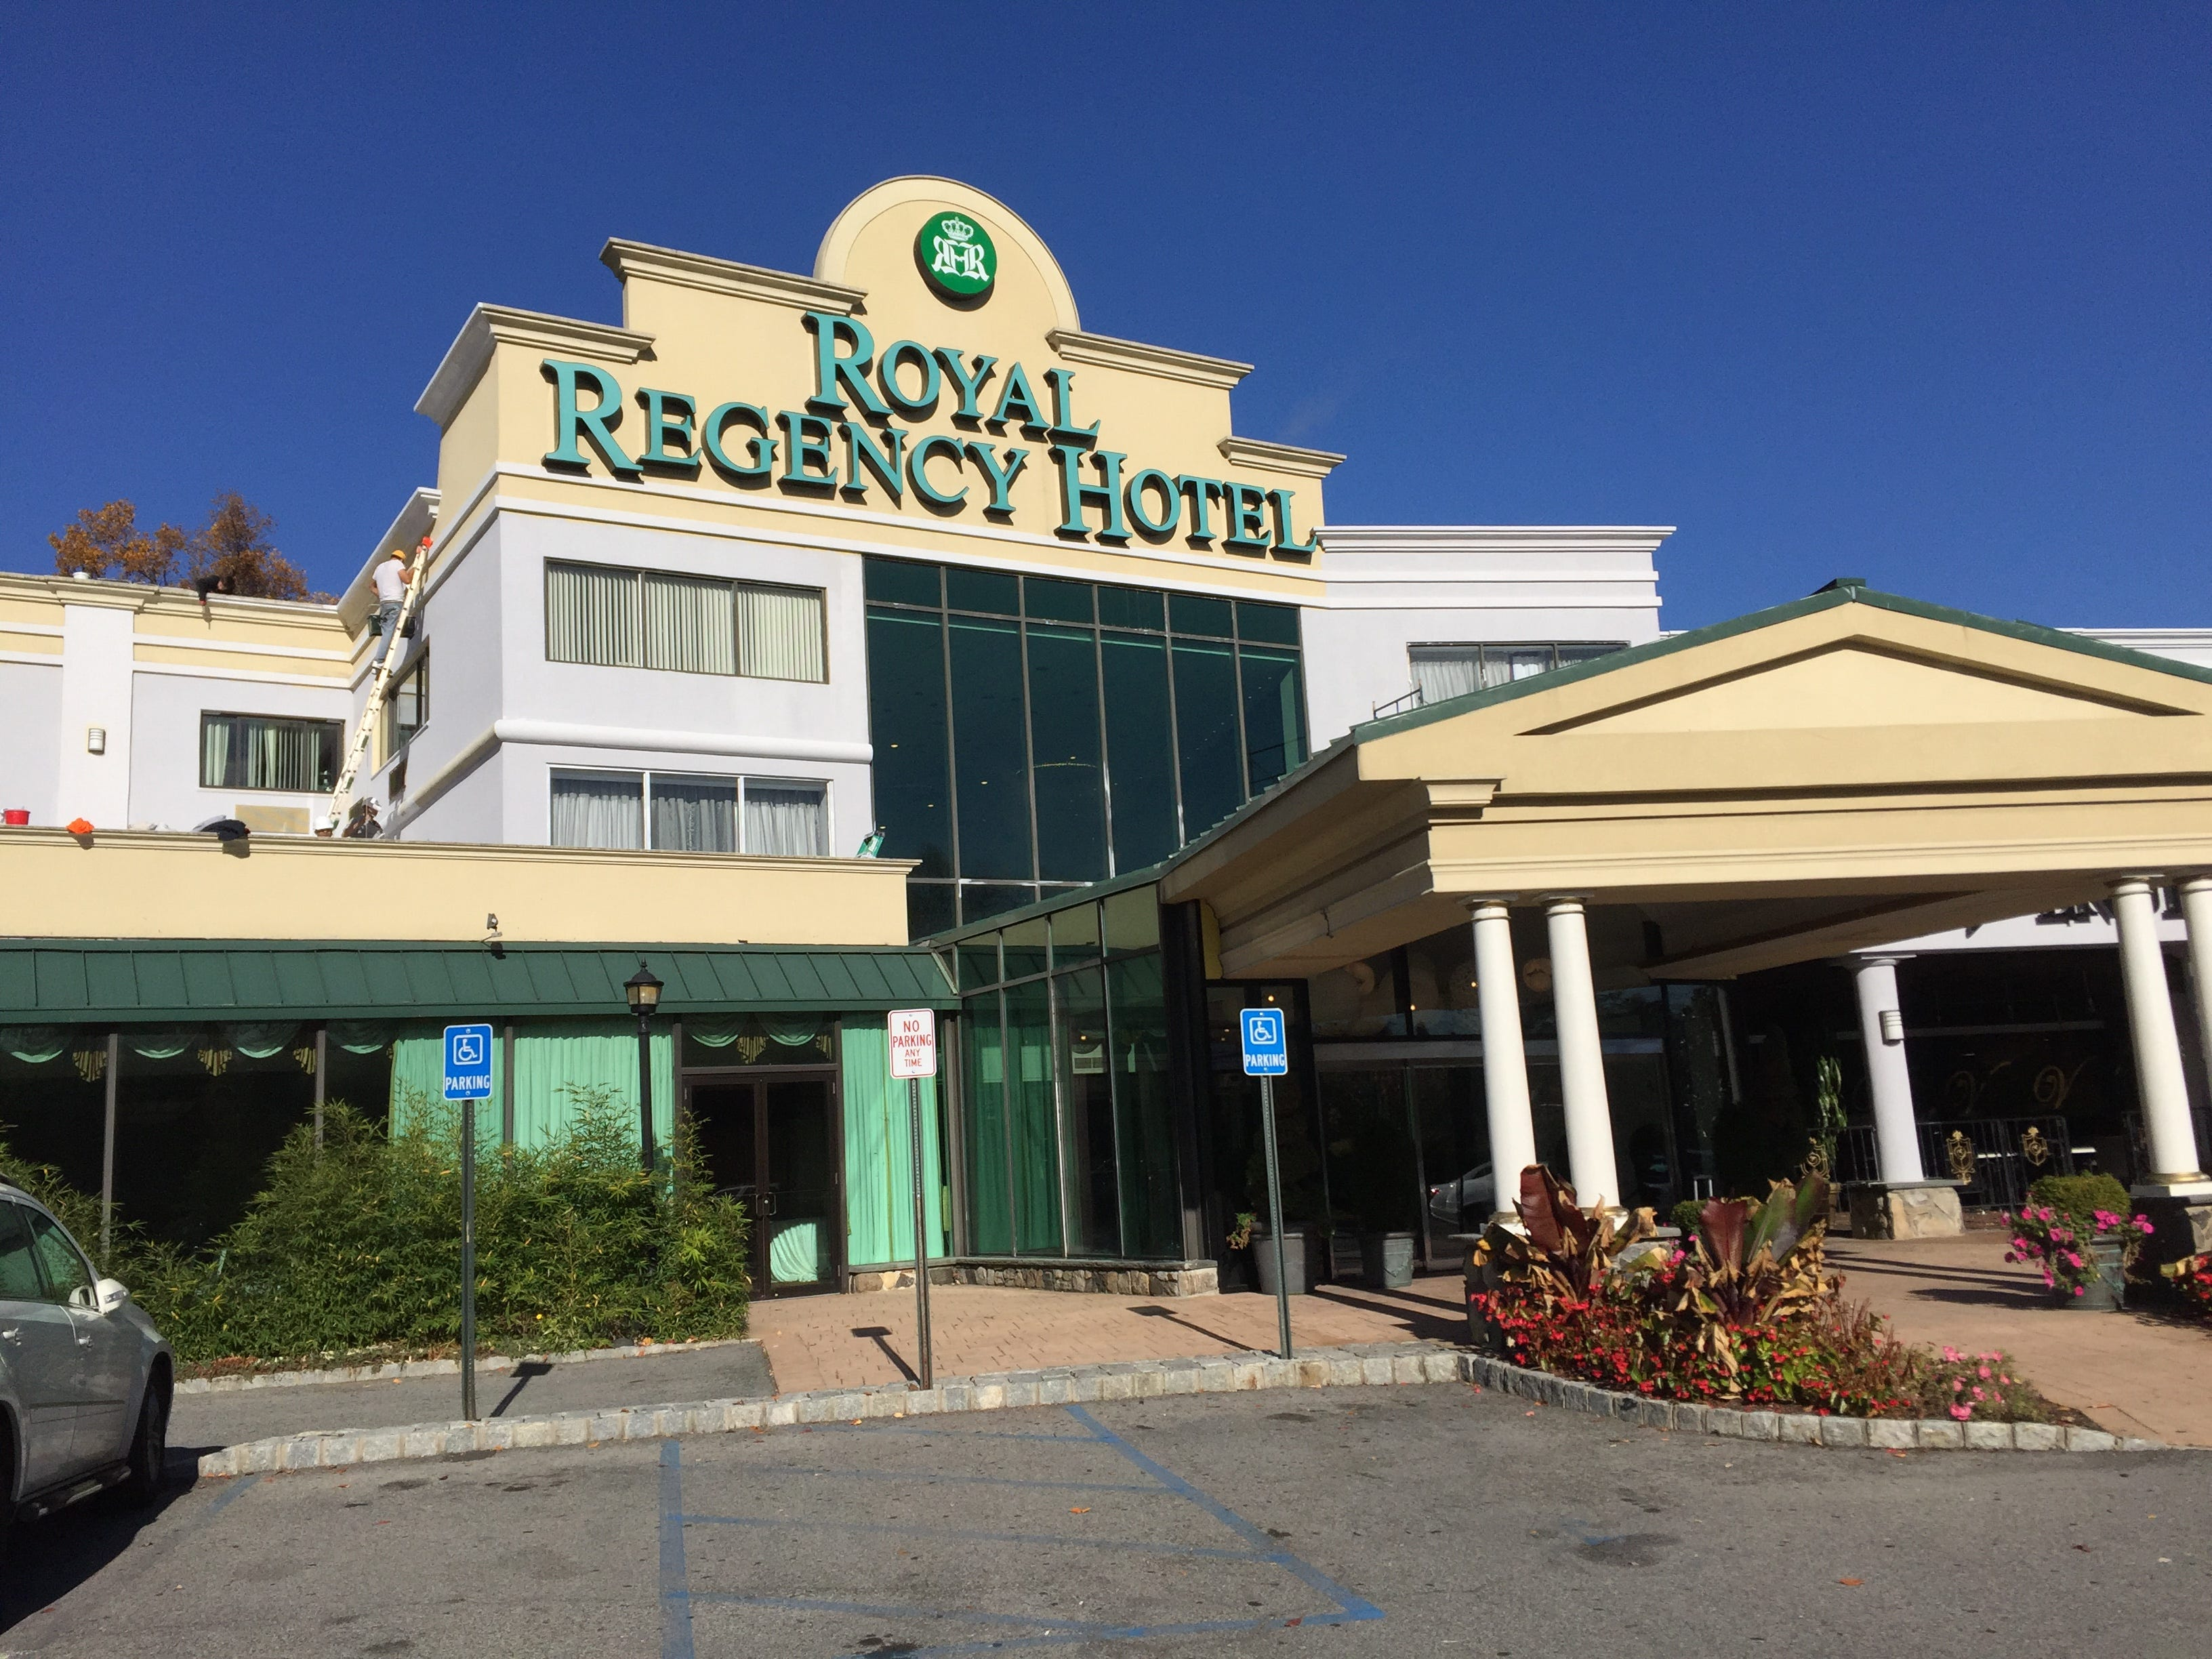 Royal regency hotel yonkers ny